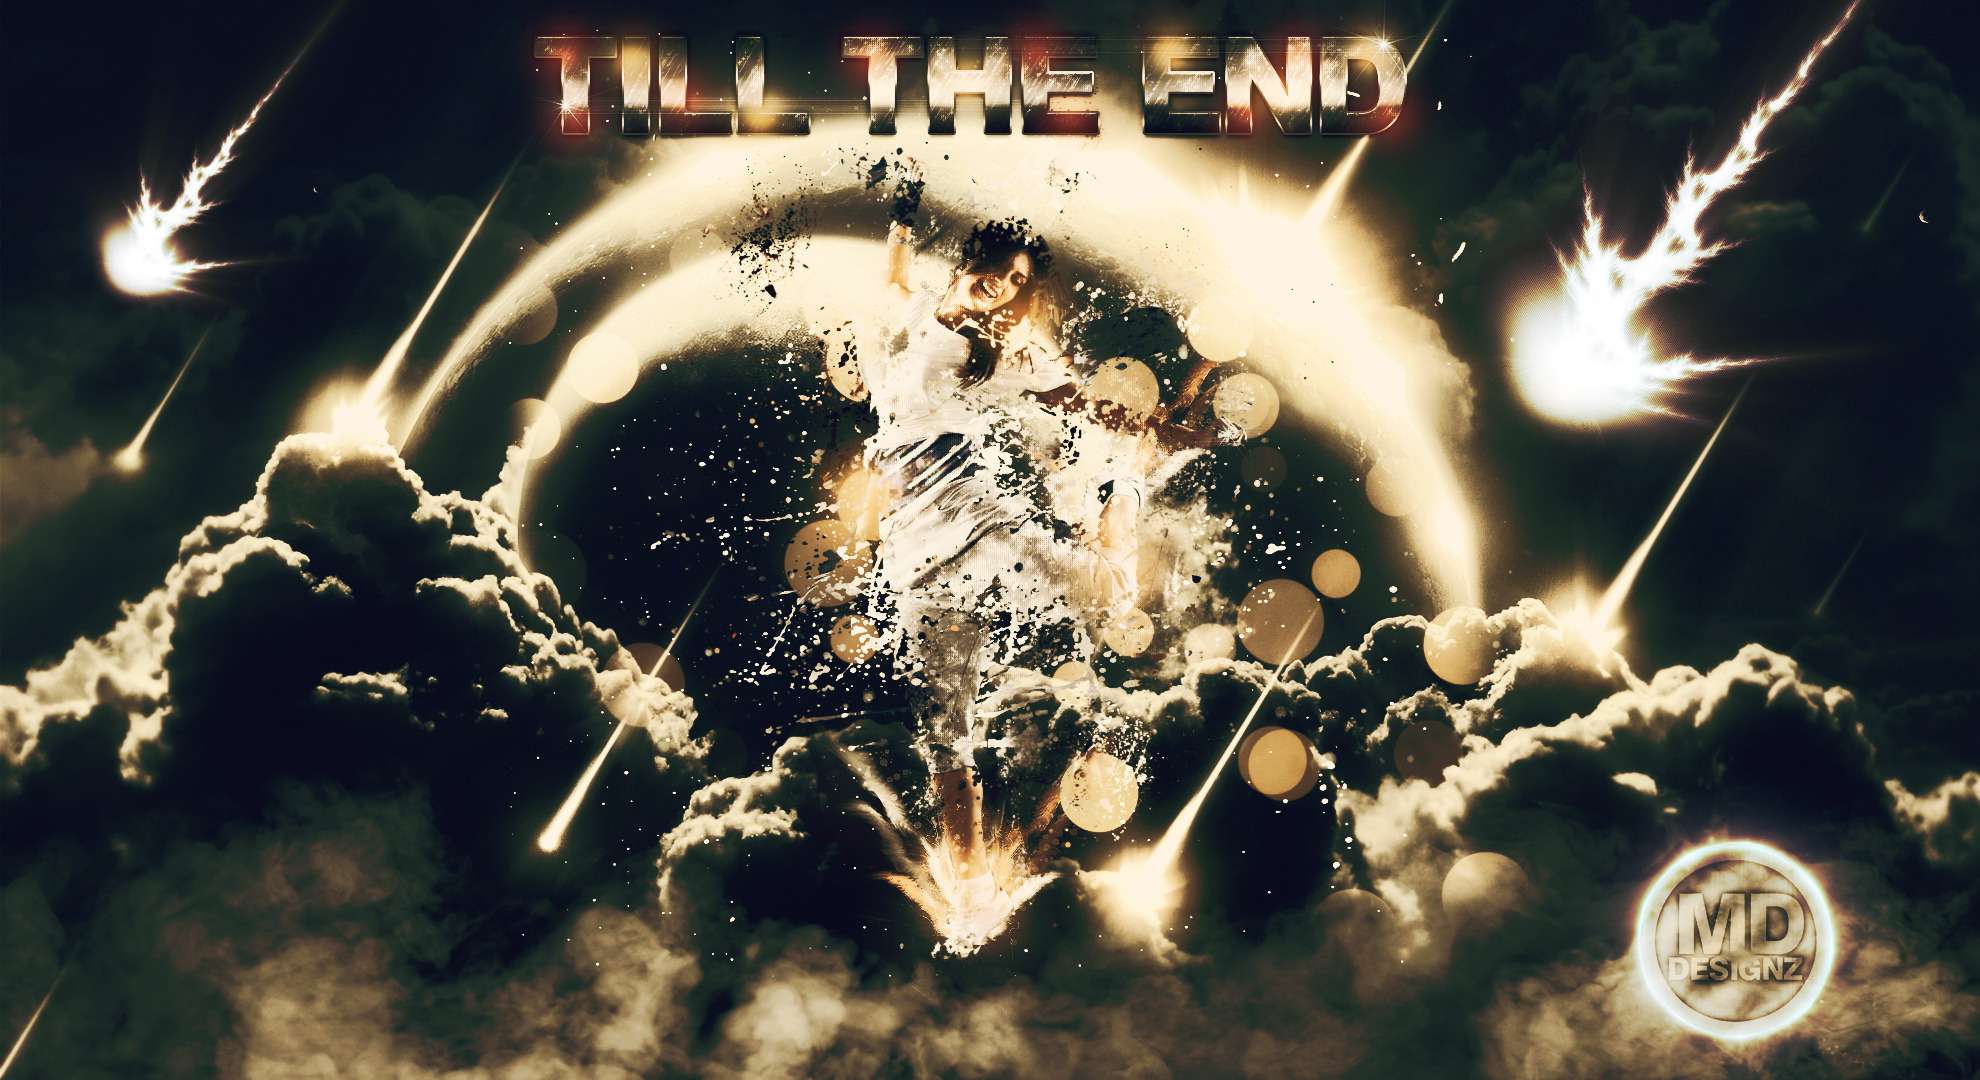 Till The End - Wallpaper by MDDESIGNZ on DeviantArt